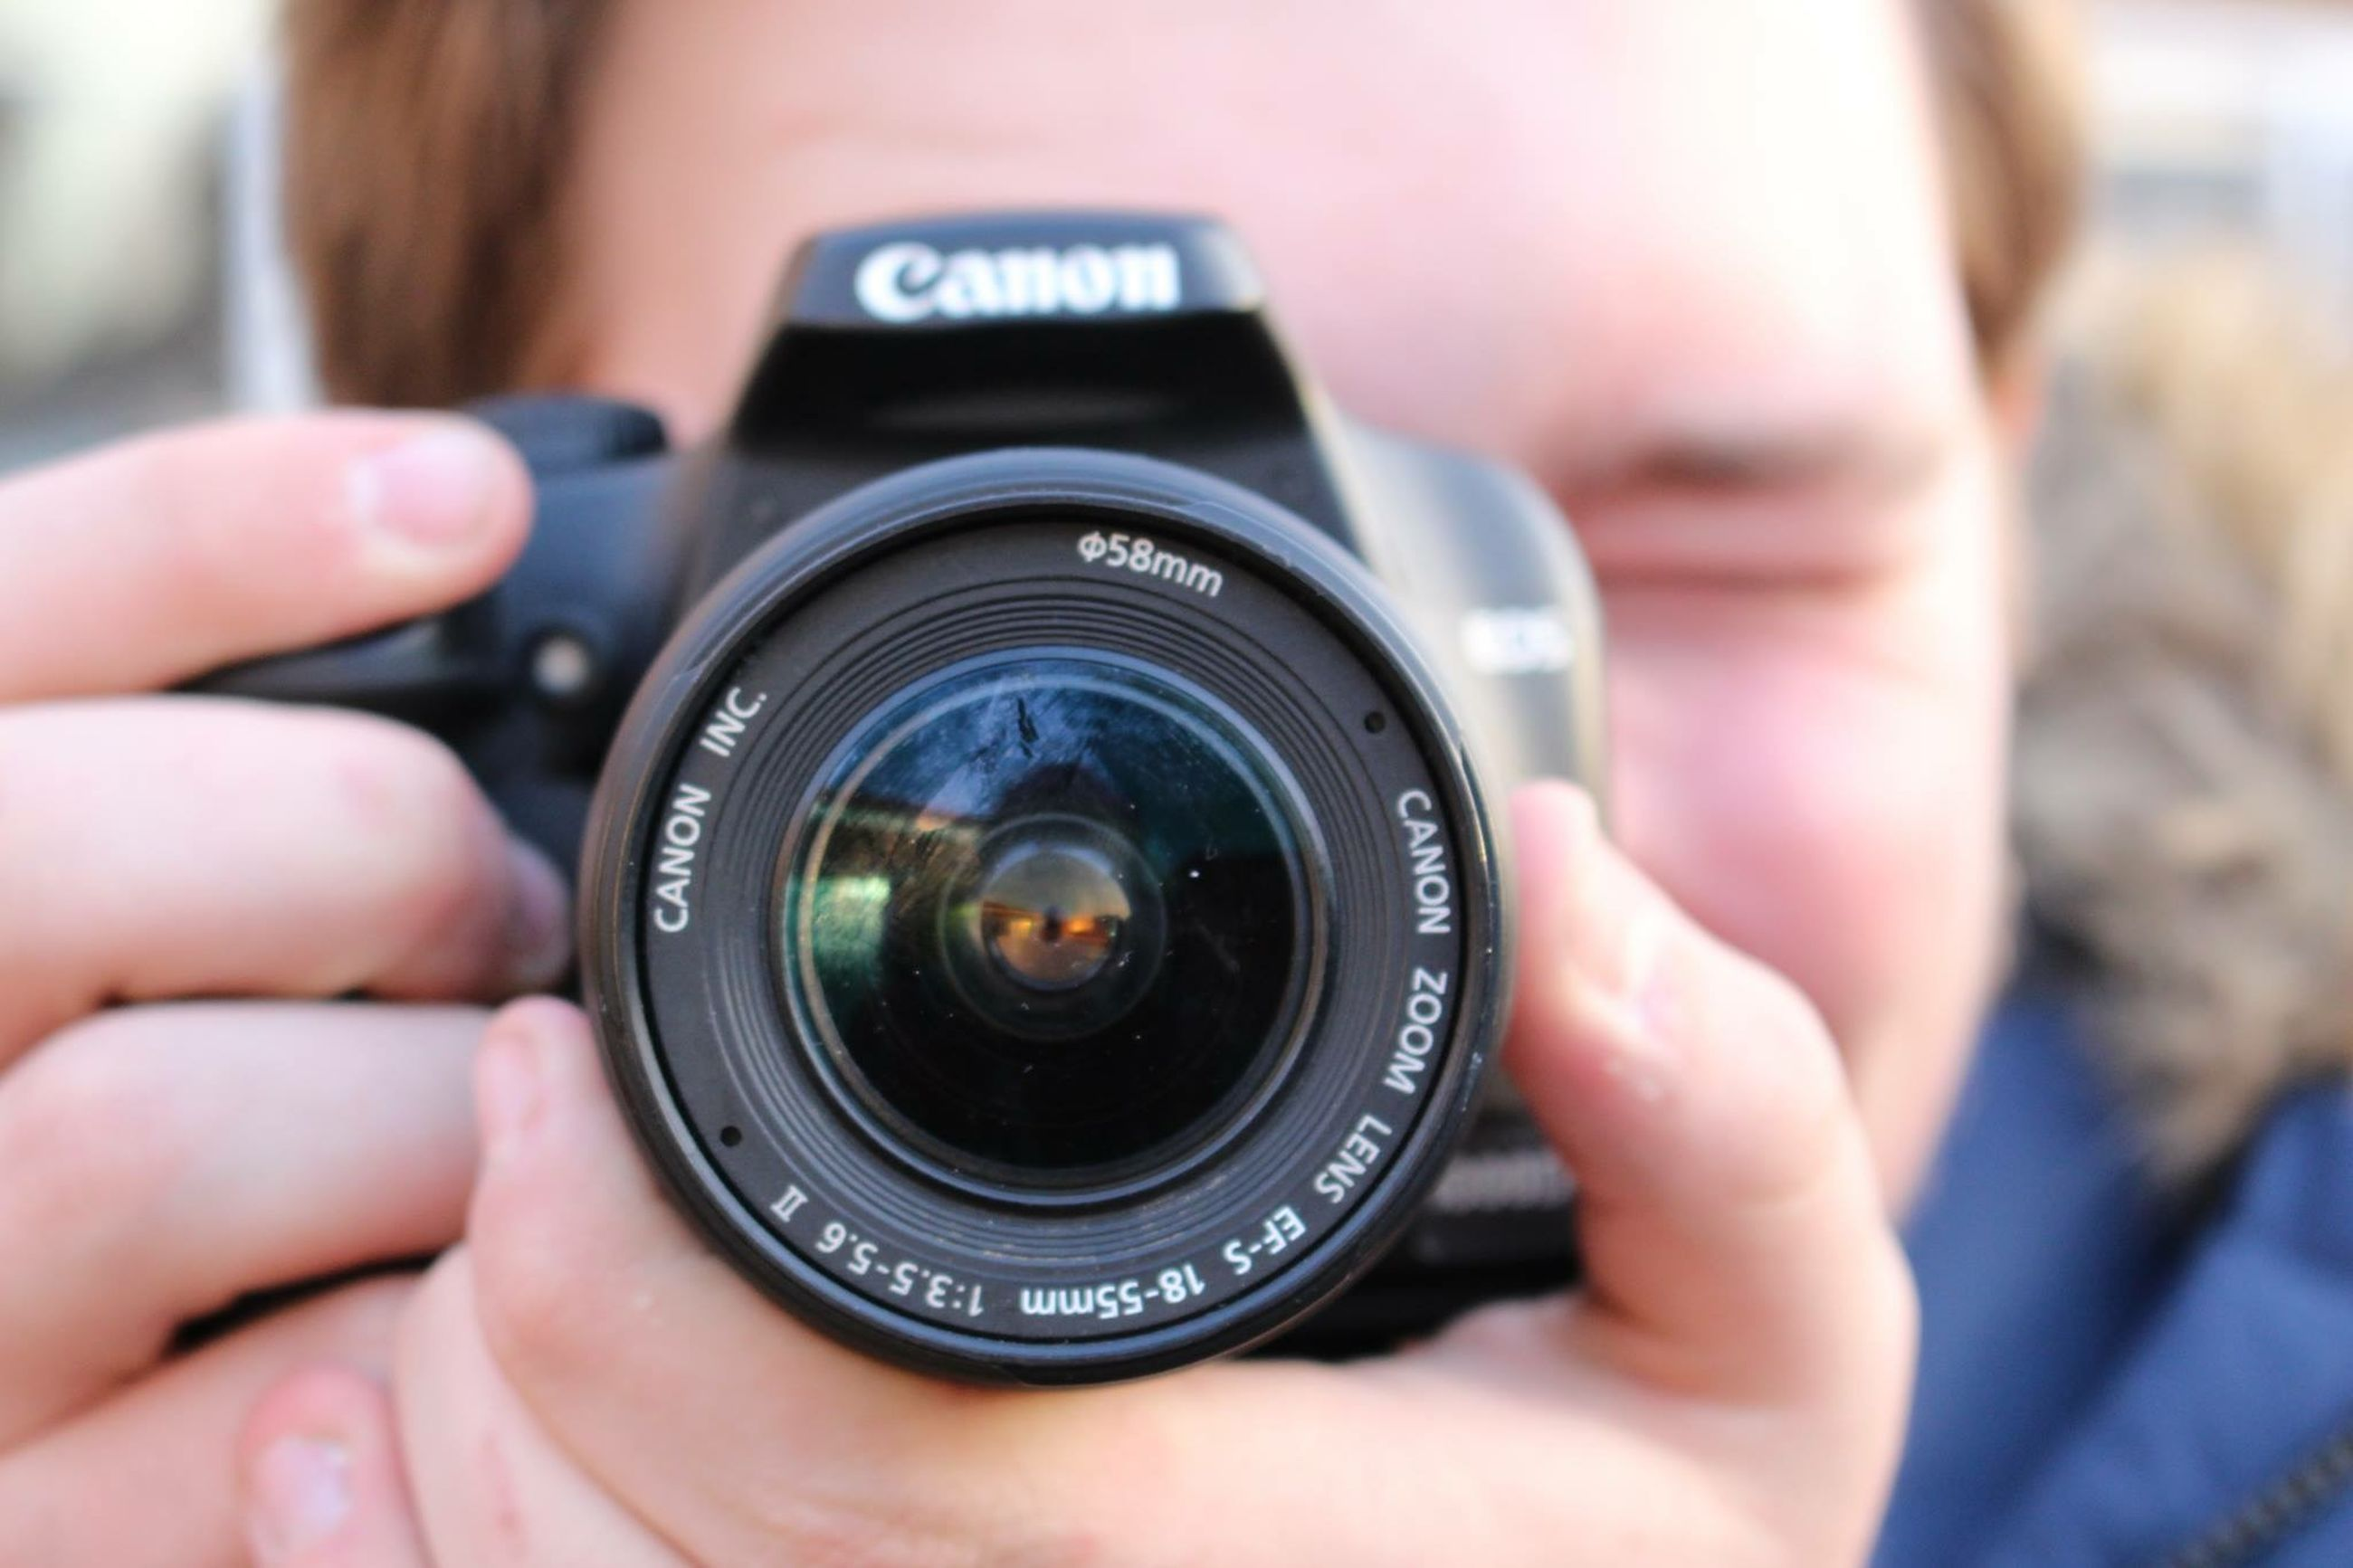 person, holding, photography themes, technology, photographing, part of, camera - photographic equipment, cropped, digital camera, wireless technology, smart phone, lifestyles, human finger, close-up, communication, focus on foreground, leisure activity